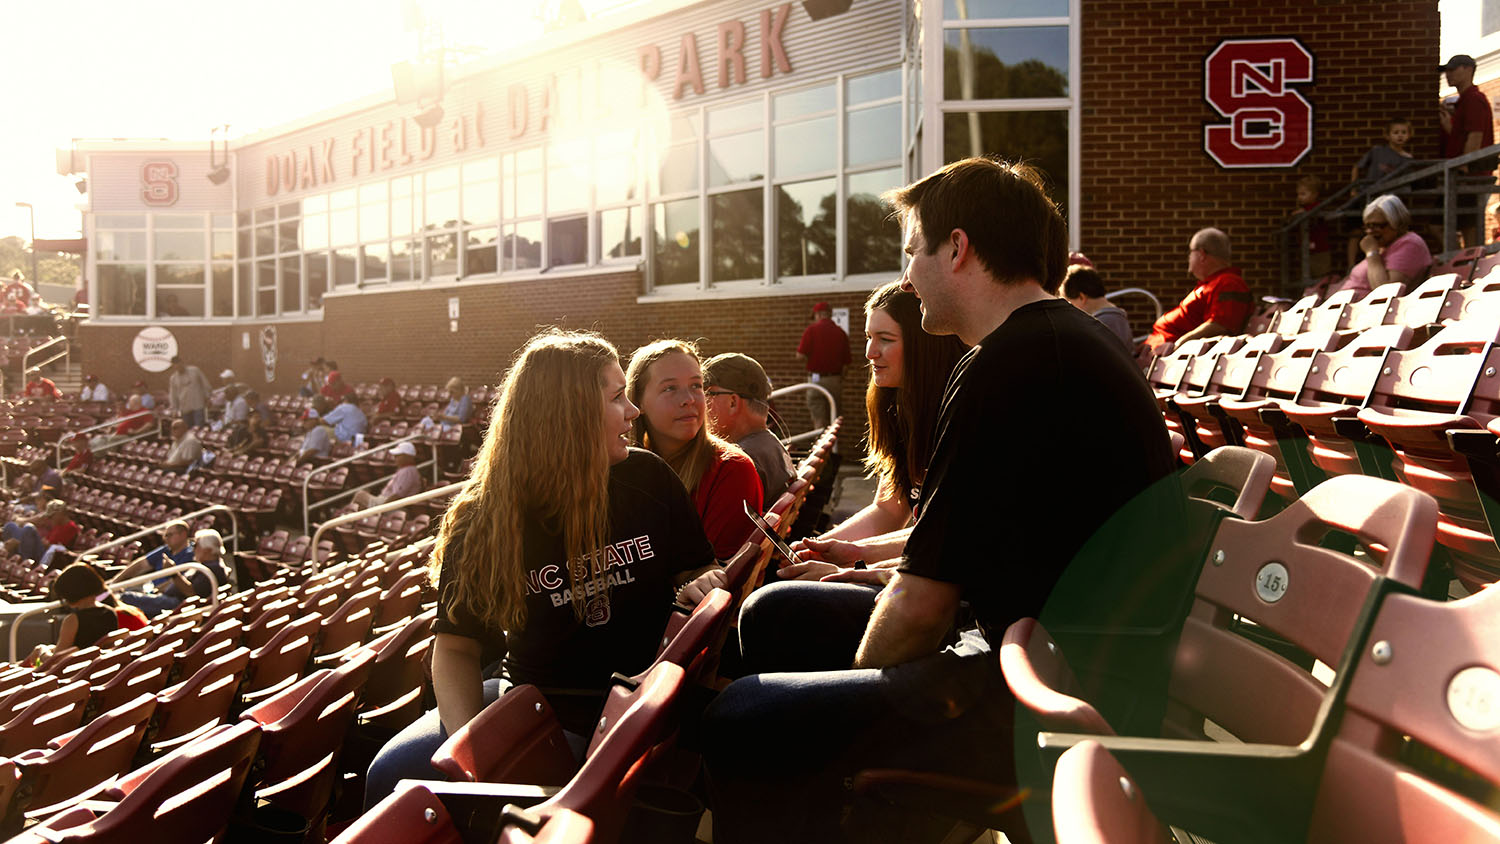 A group of students collaborate in the stands at NC State's Doak Field